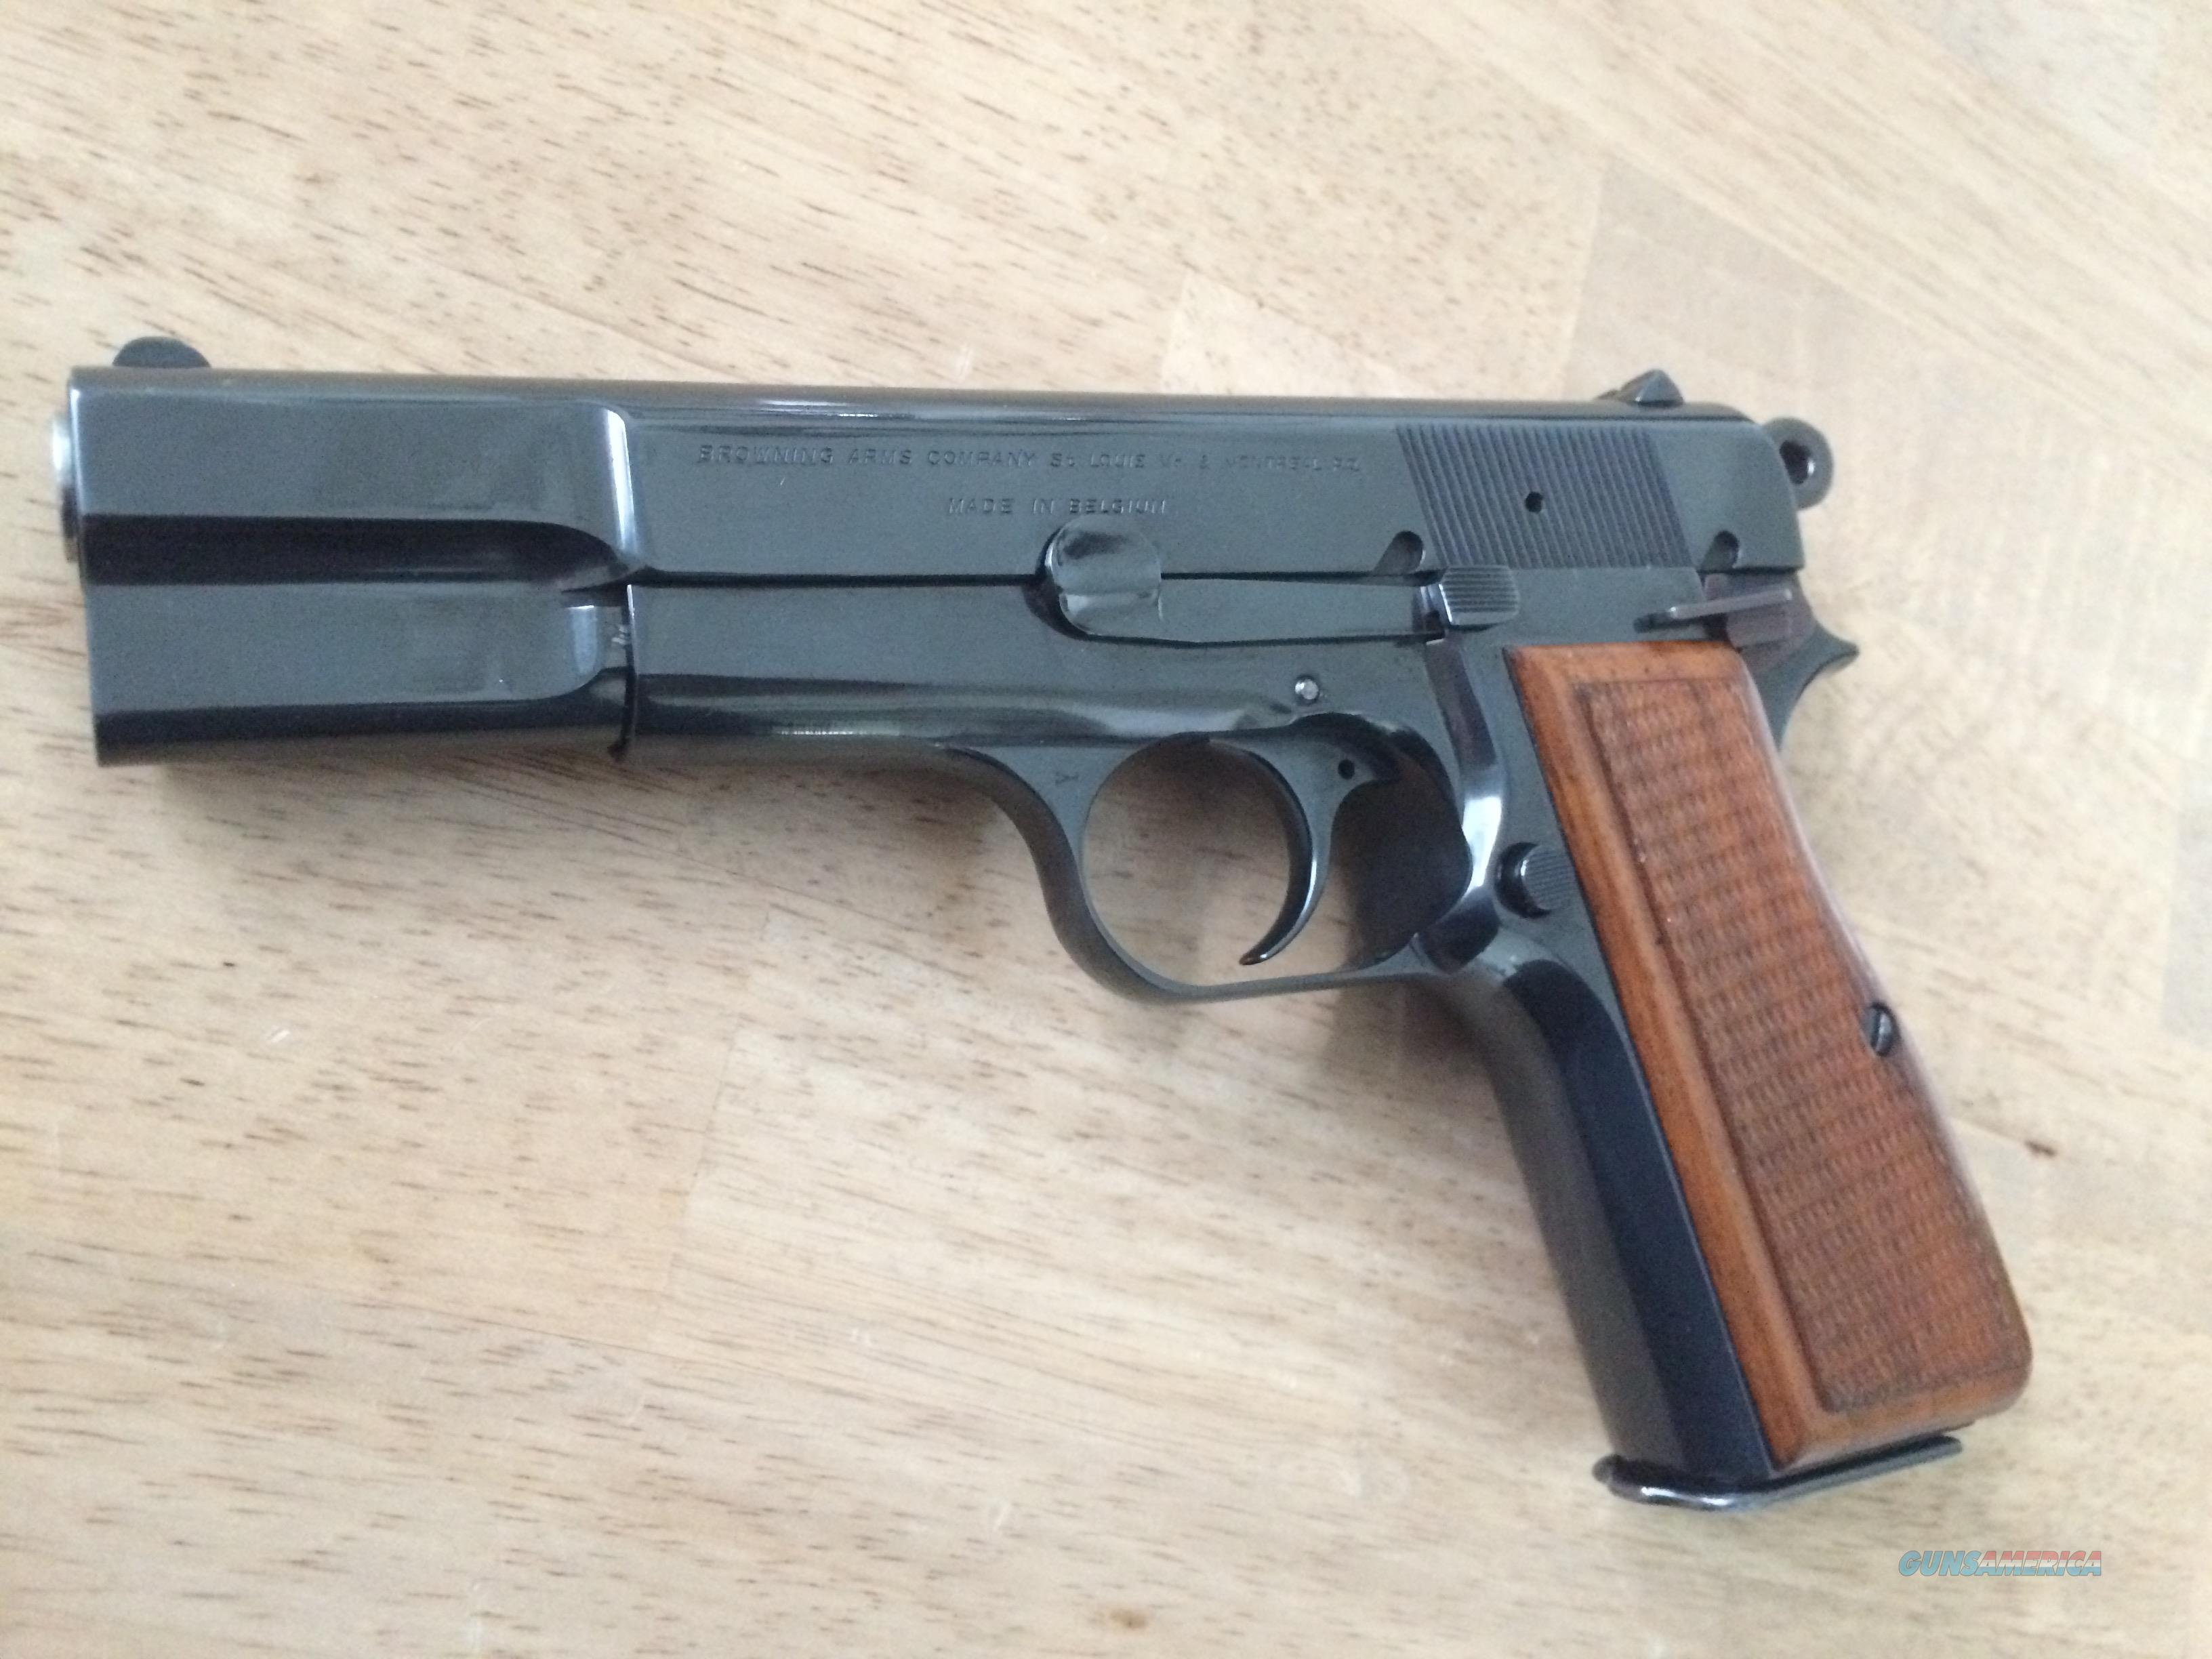 Browning Hi Power Belgium T Series 9mm - 1969 - with case  Guns > Pistols > Browning Pistols > Hi Power